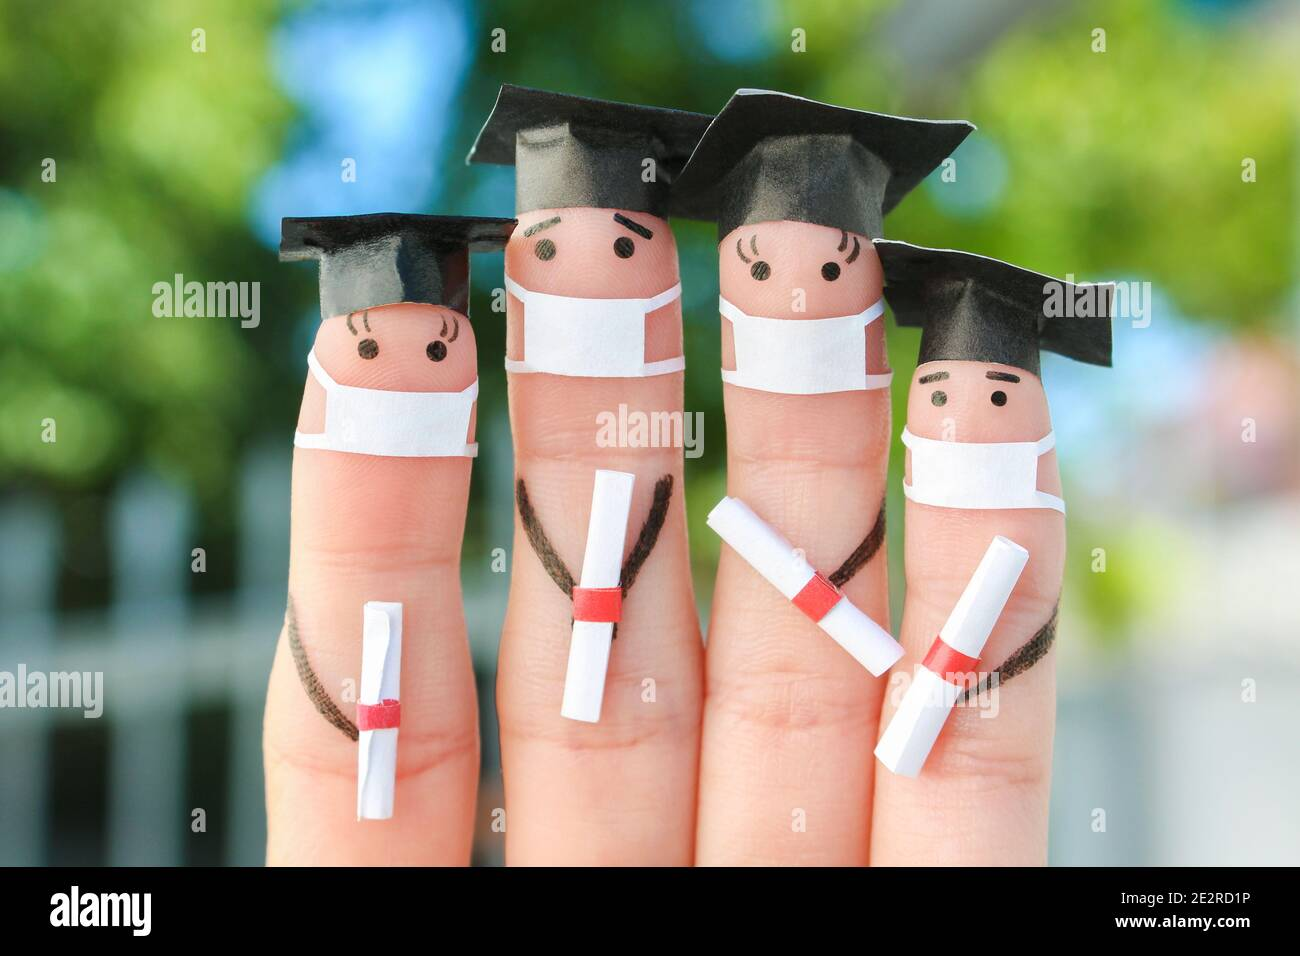 Fingers art of students in medical mask from COVID-2019. Graduates holding their diploma after graduation. Stock Photo